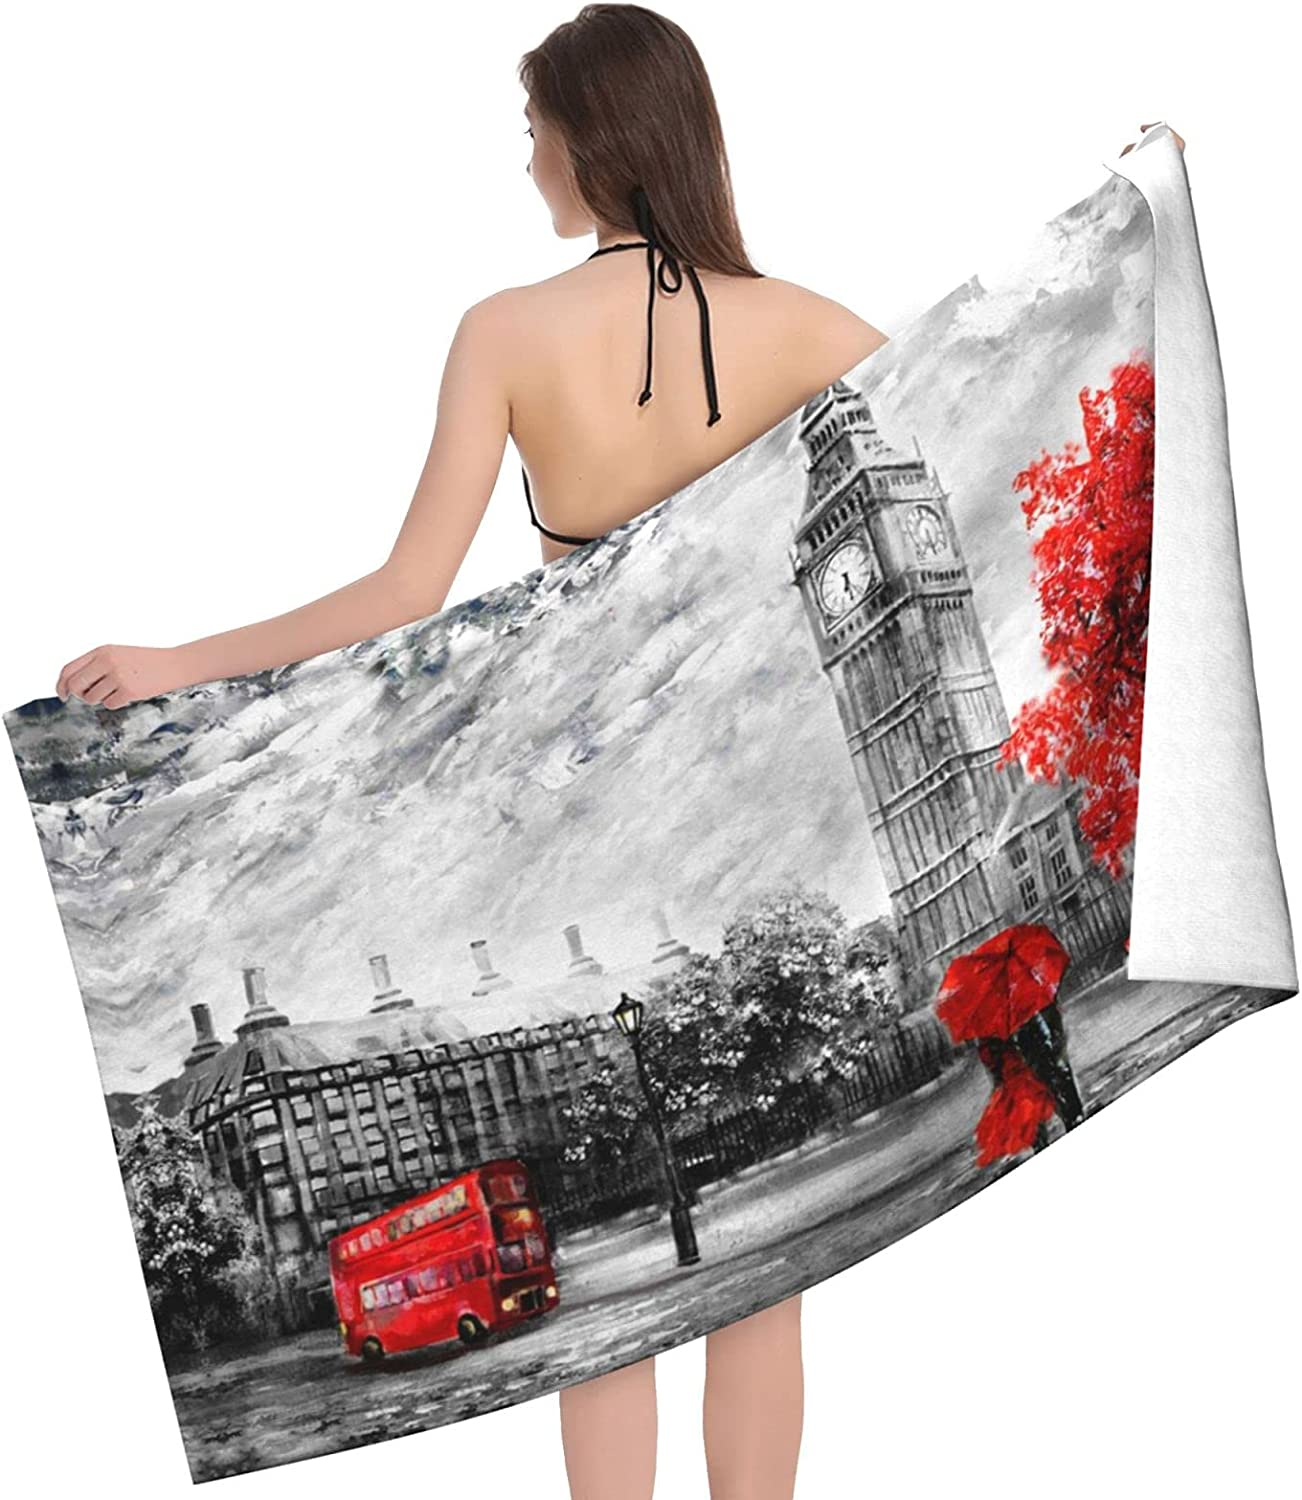 Red Popular products London Street Print Adult Towel Towels Max 60% OFF Double Beach -